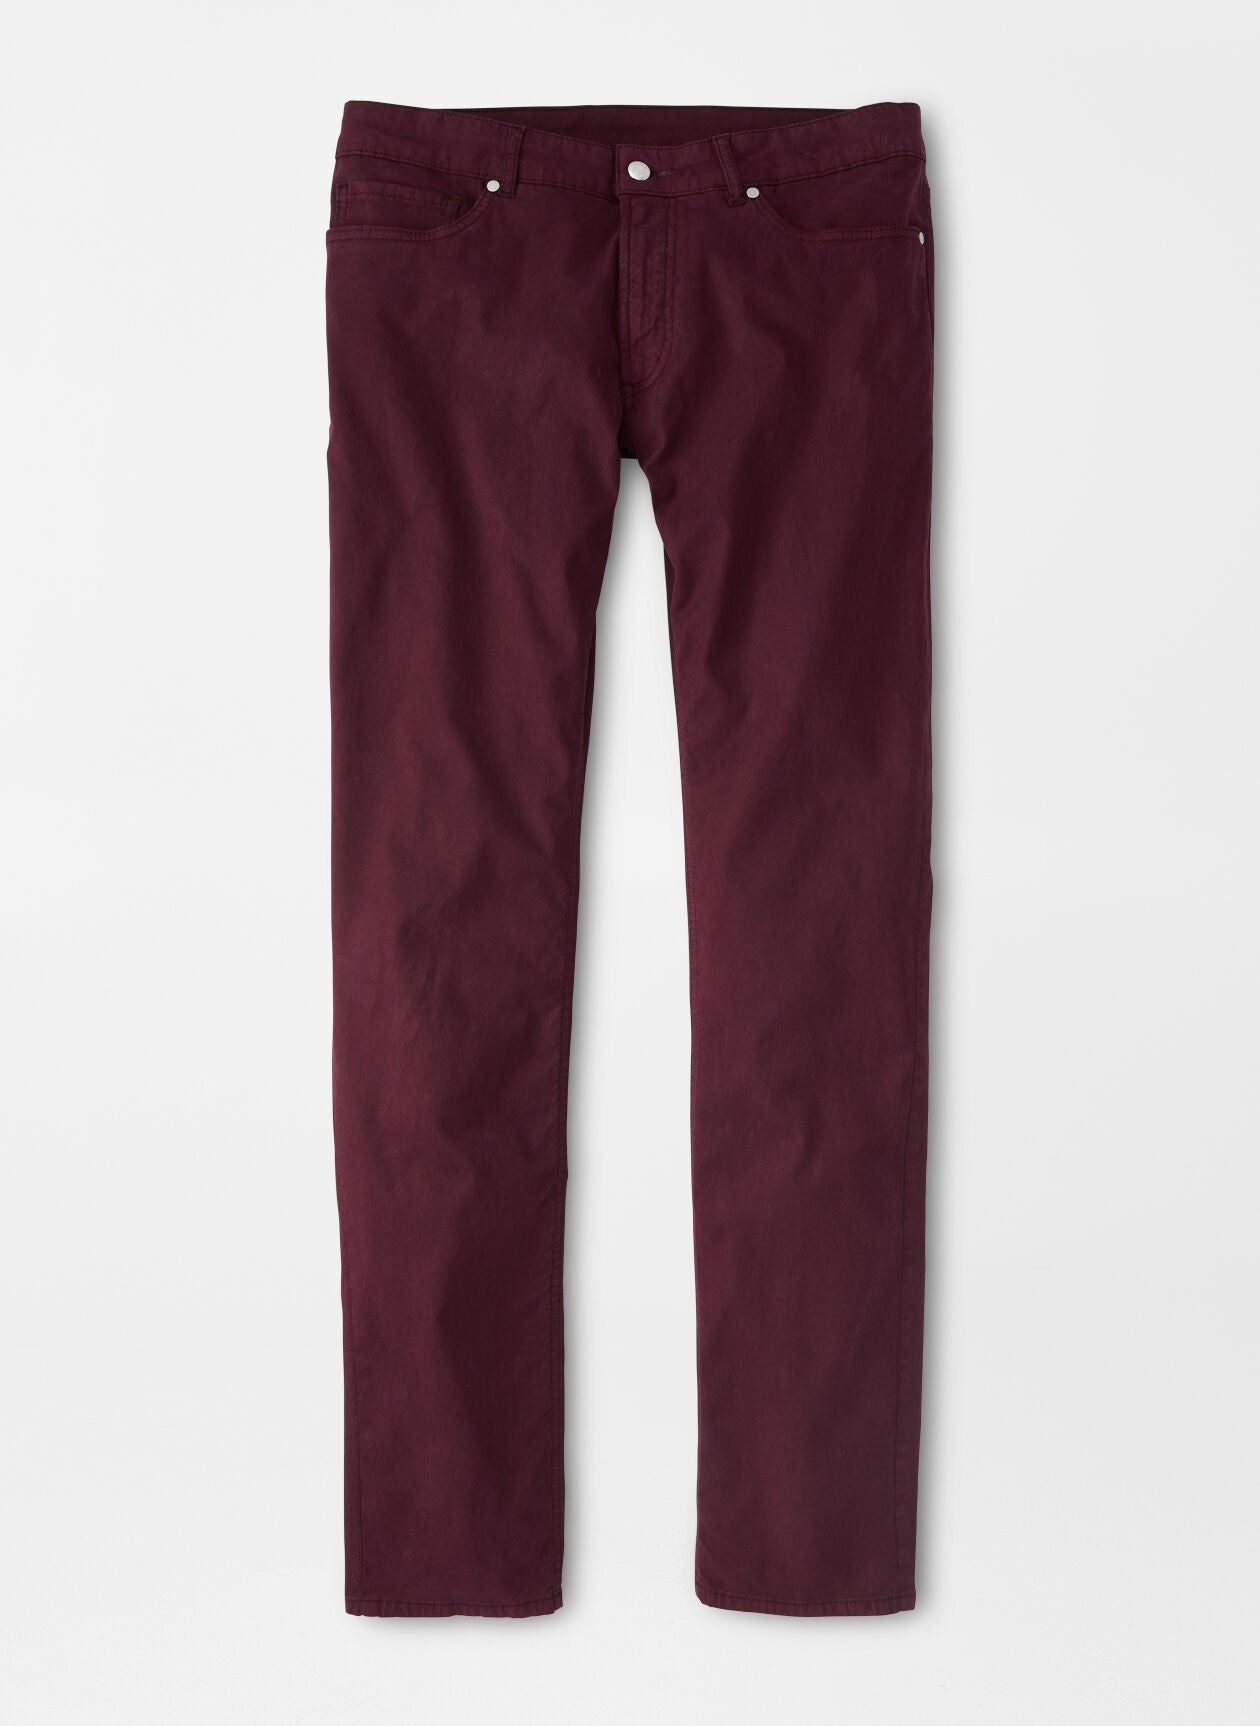 PETER MILLAR FIVE POCKET TROUSER - ELDERBERRY